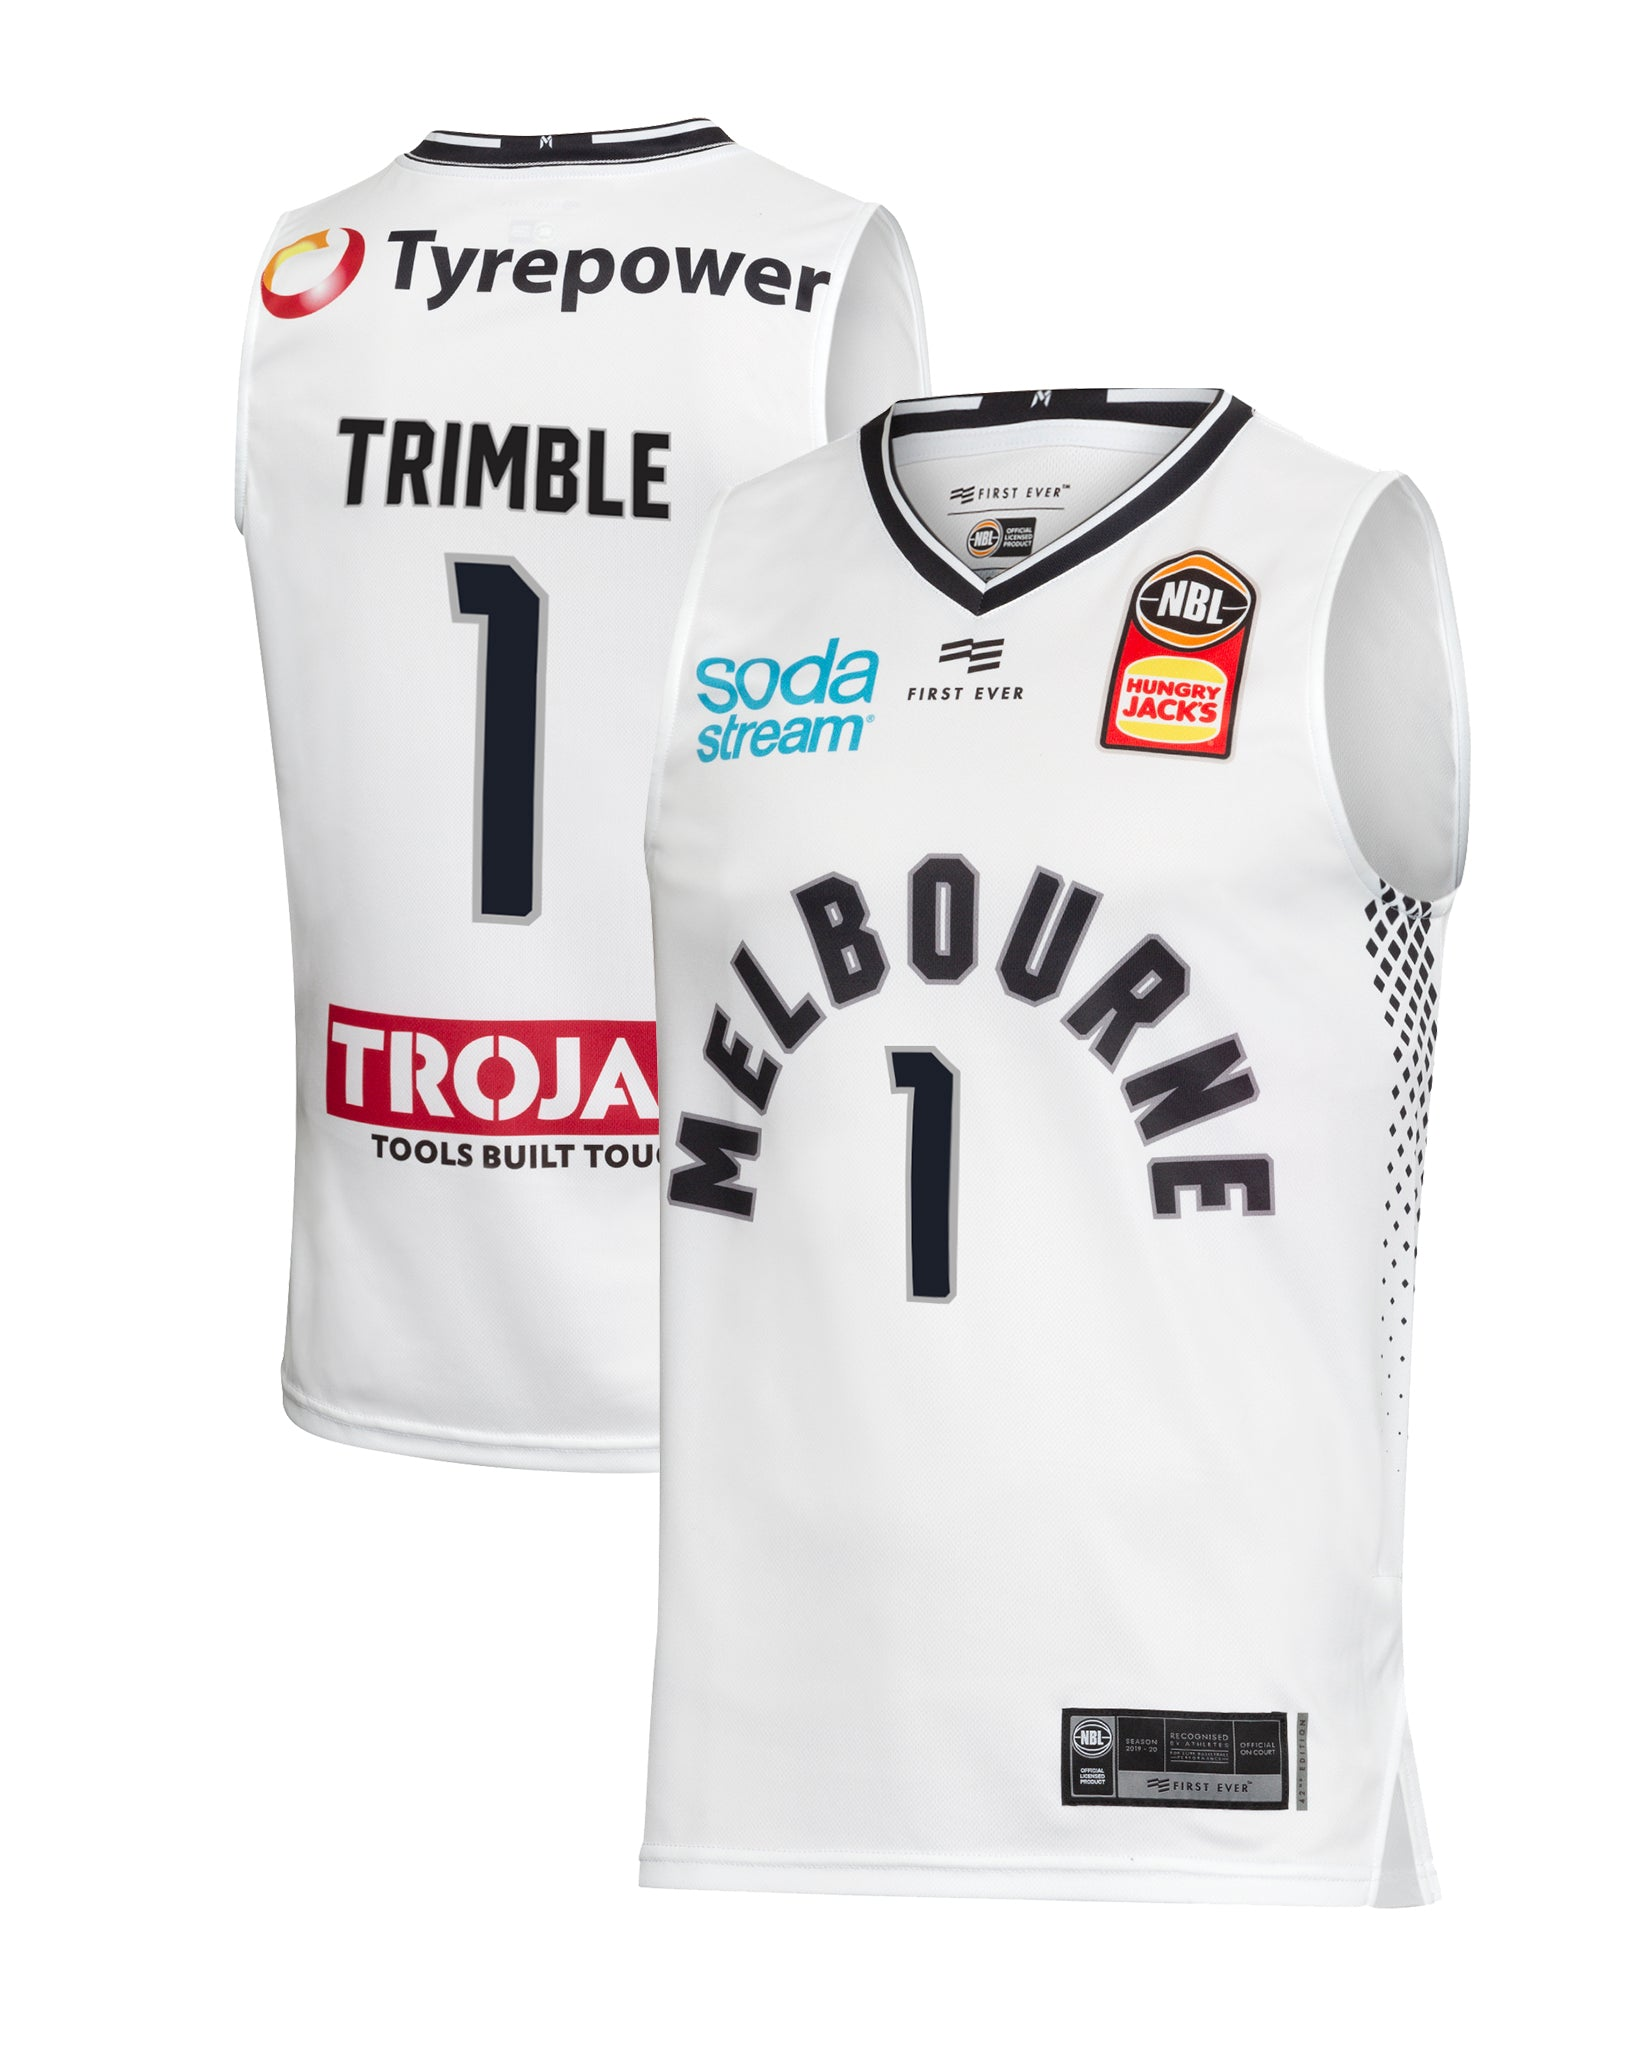 Melbourne United 19/20 Authentic Away Jersey - Melo Trimble